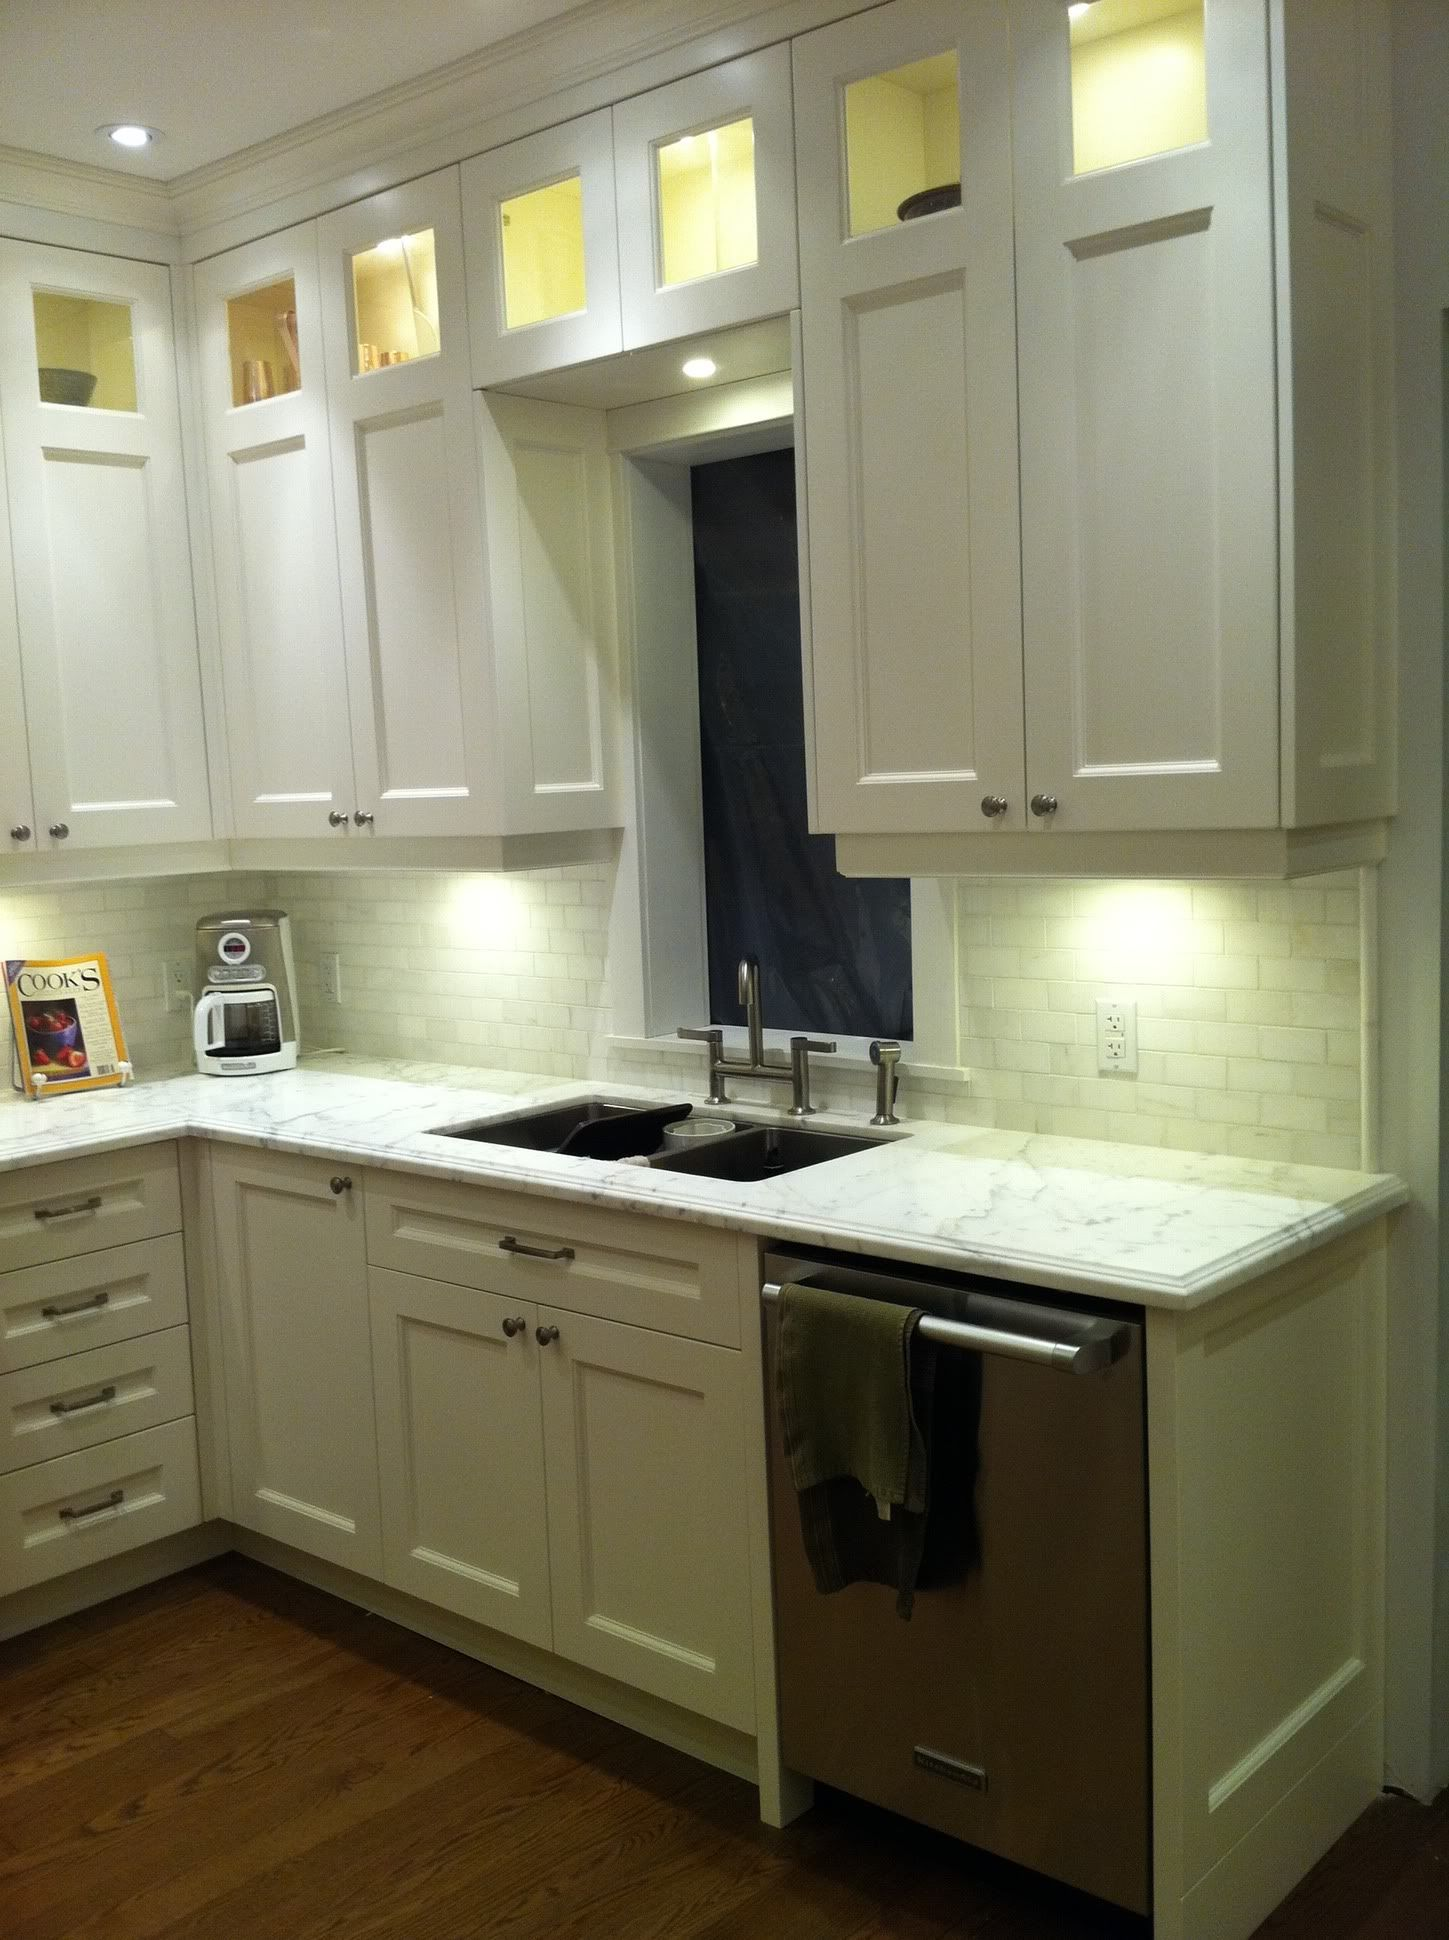 Explore Gallery Of 9 Ft Ceiling Kitchen Cabinets 3 Of 12 Tall Kitchen Cabinets Kitchen Cabinets To Ceiling Redo Kitchen Cabinets